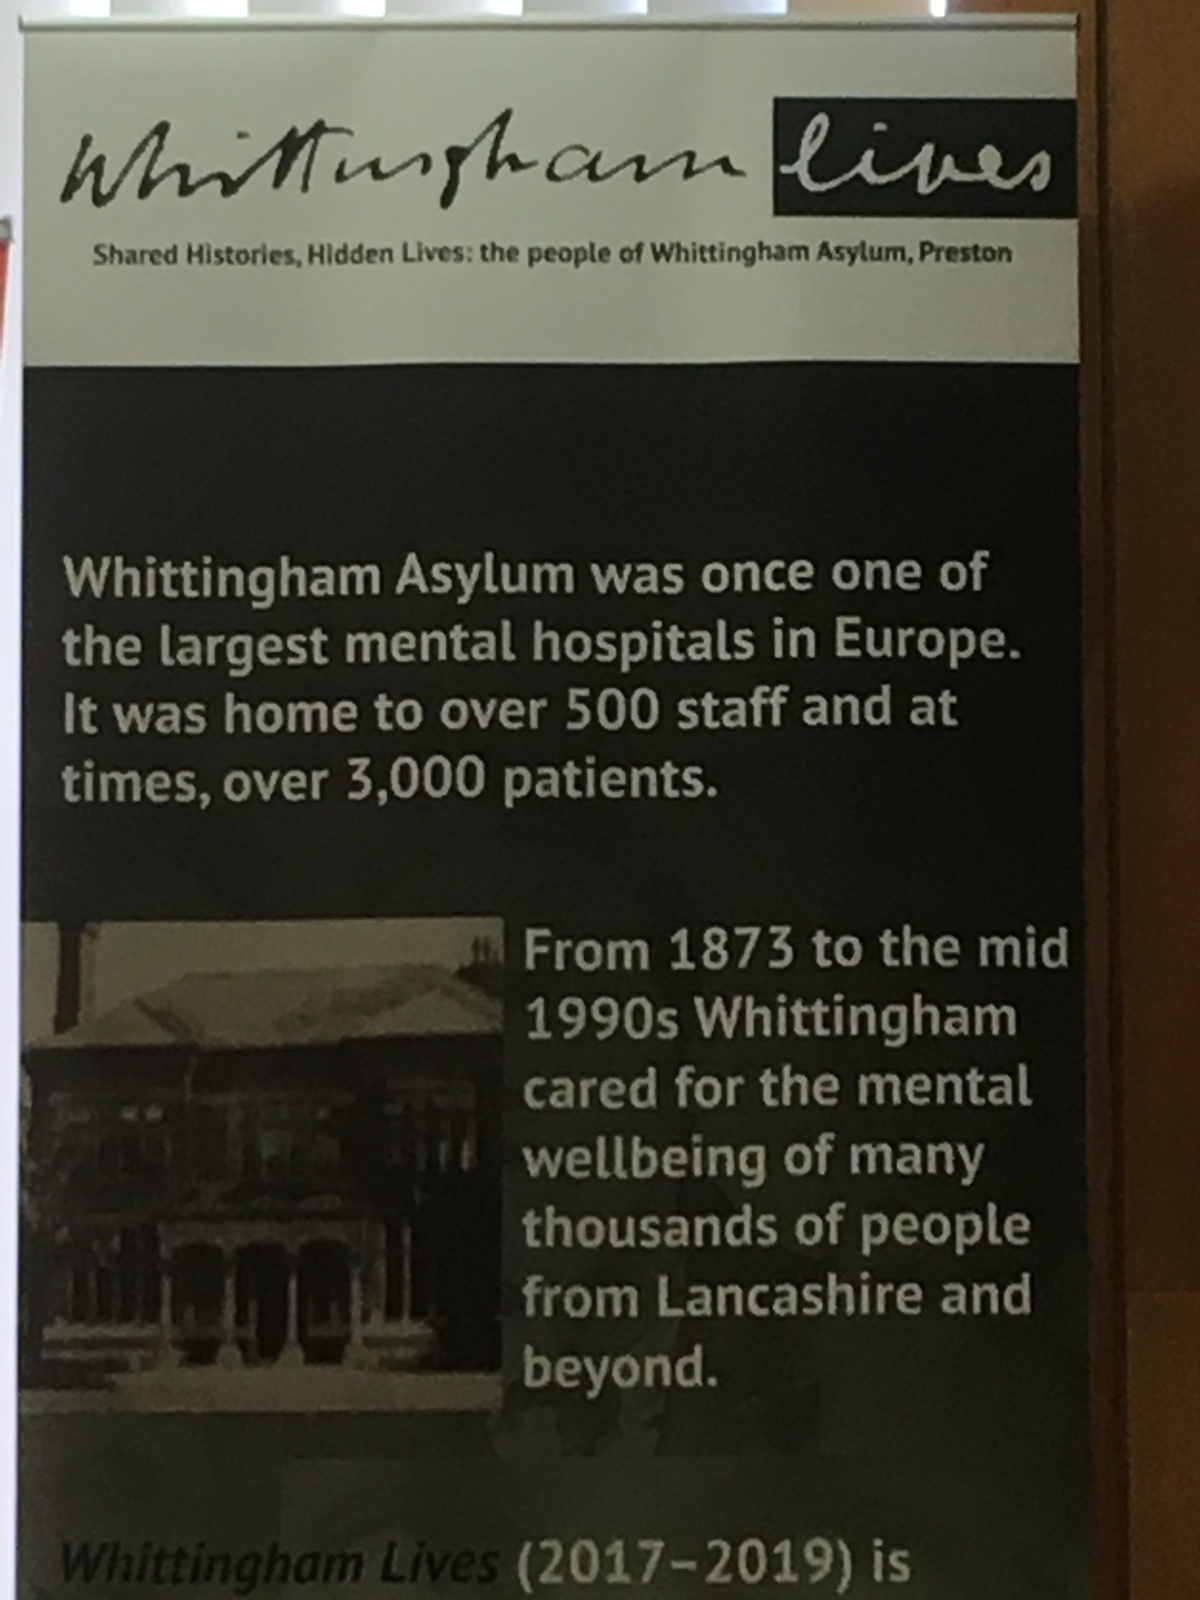 Voices of Whittingham….Past lives in an Asylum.